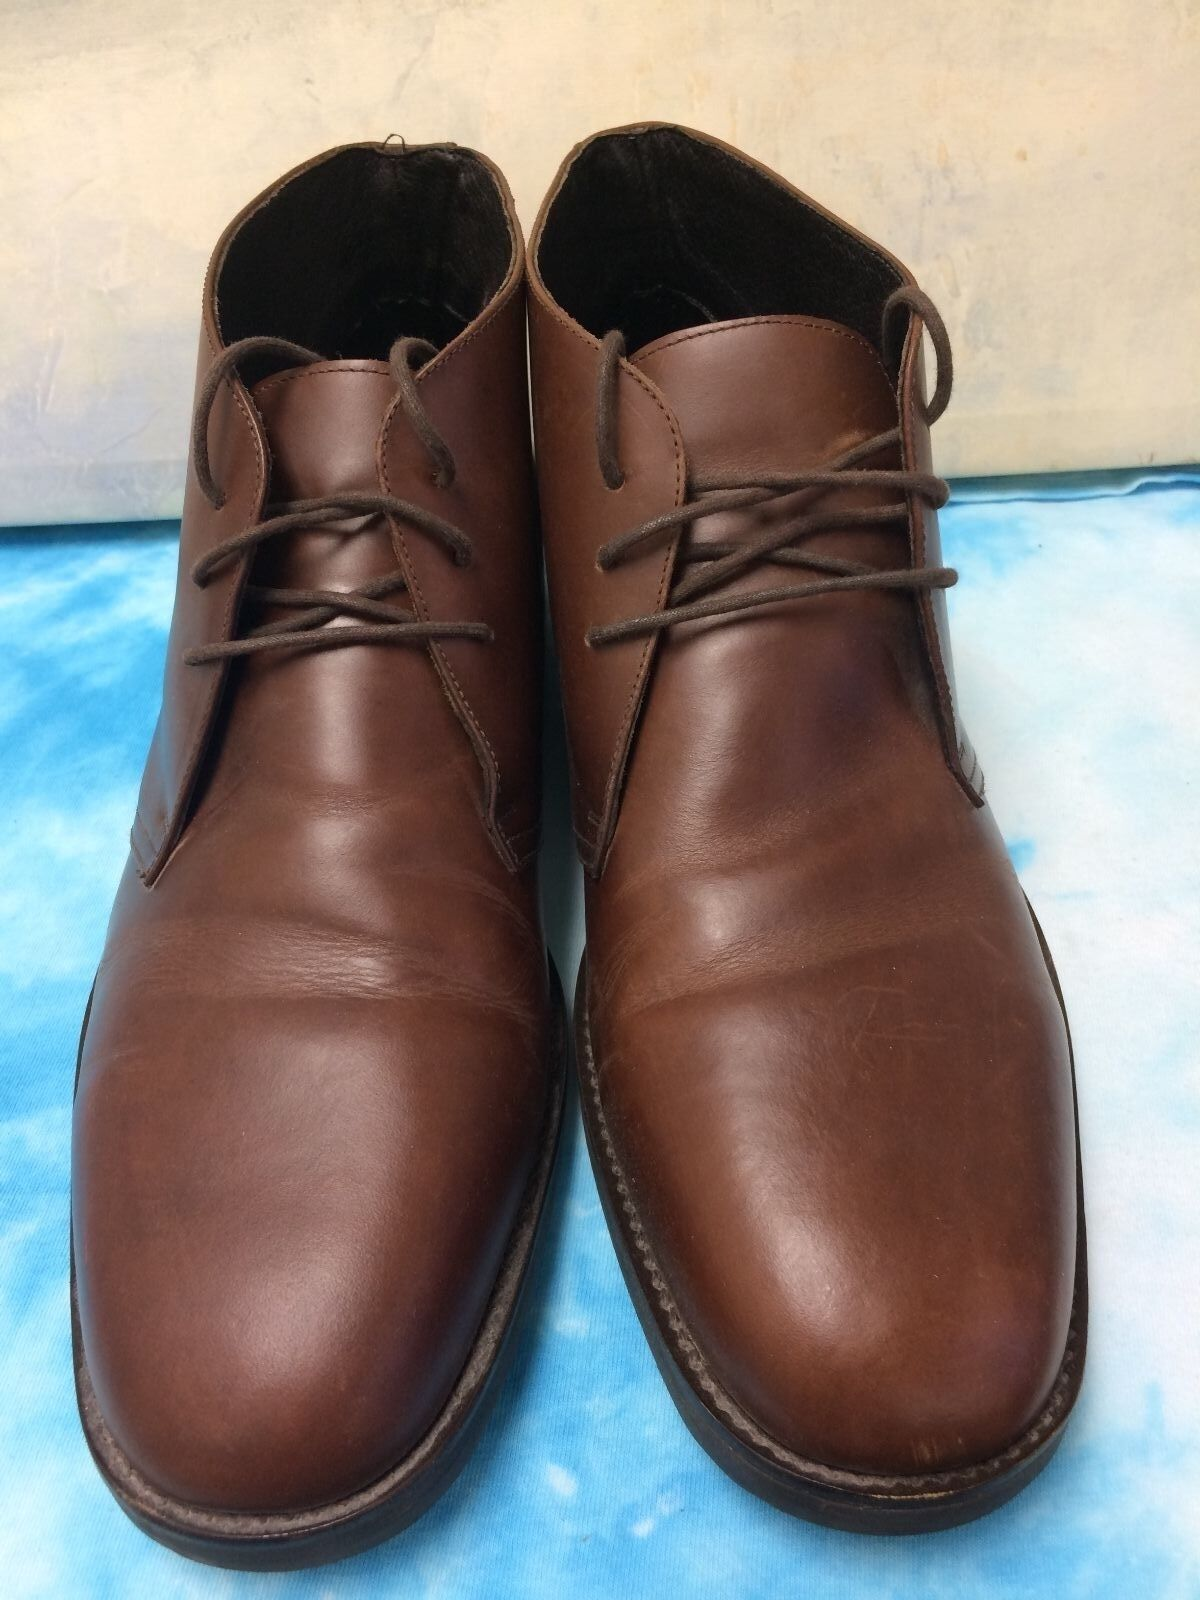 BROWN LEATHER LANDS' END LACE UP ANKLE BOOTS 13 M